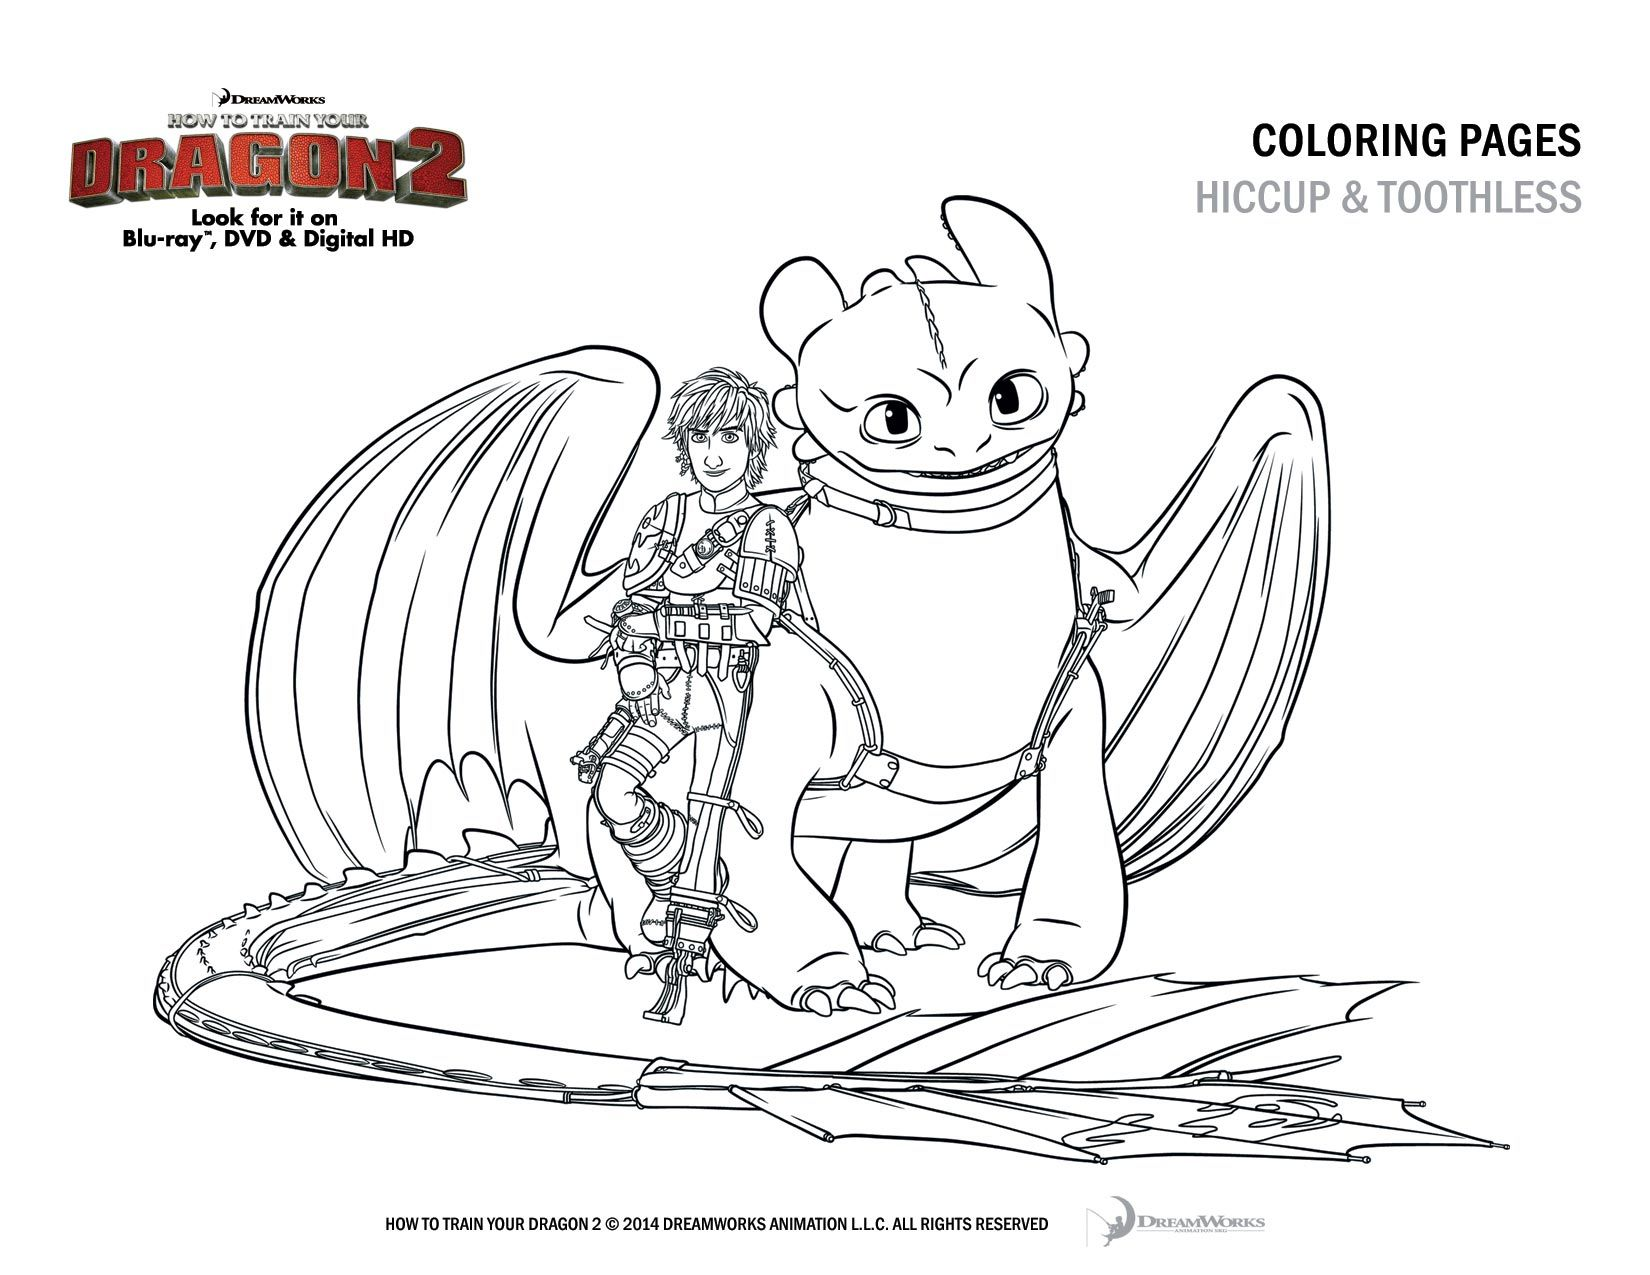 how to train your dragon 2 coloring sheet hiccup and toothless printable coloring pages of